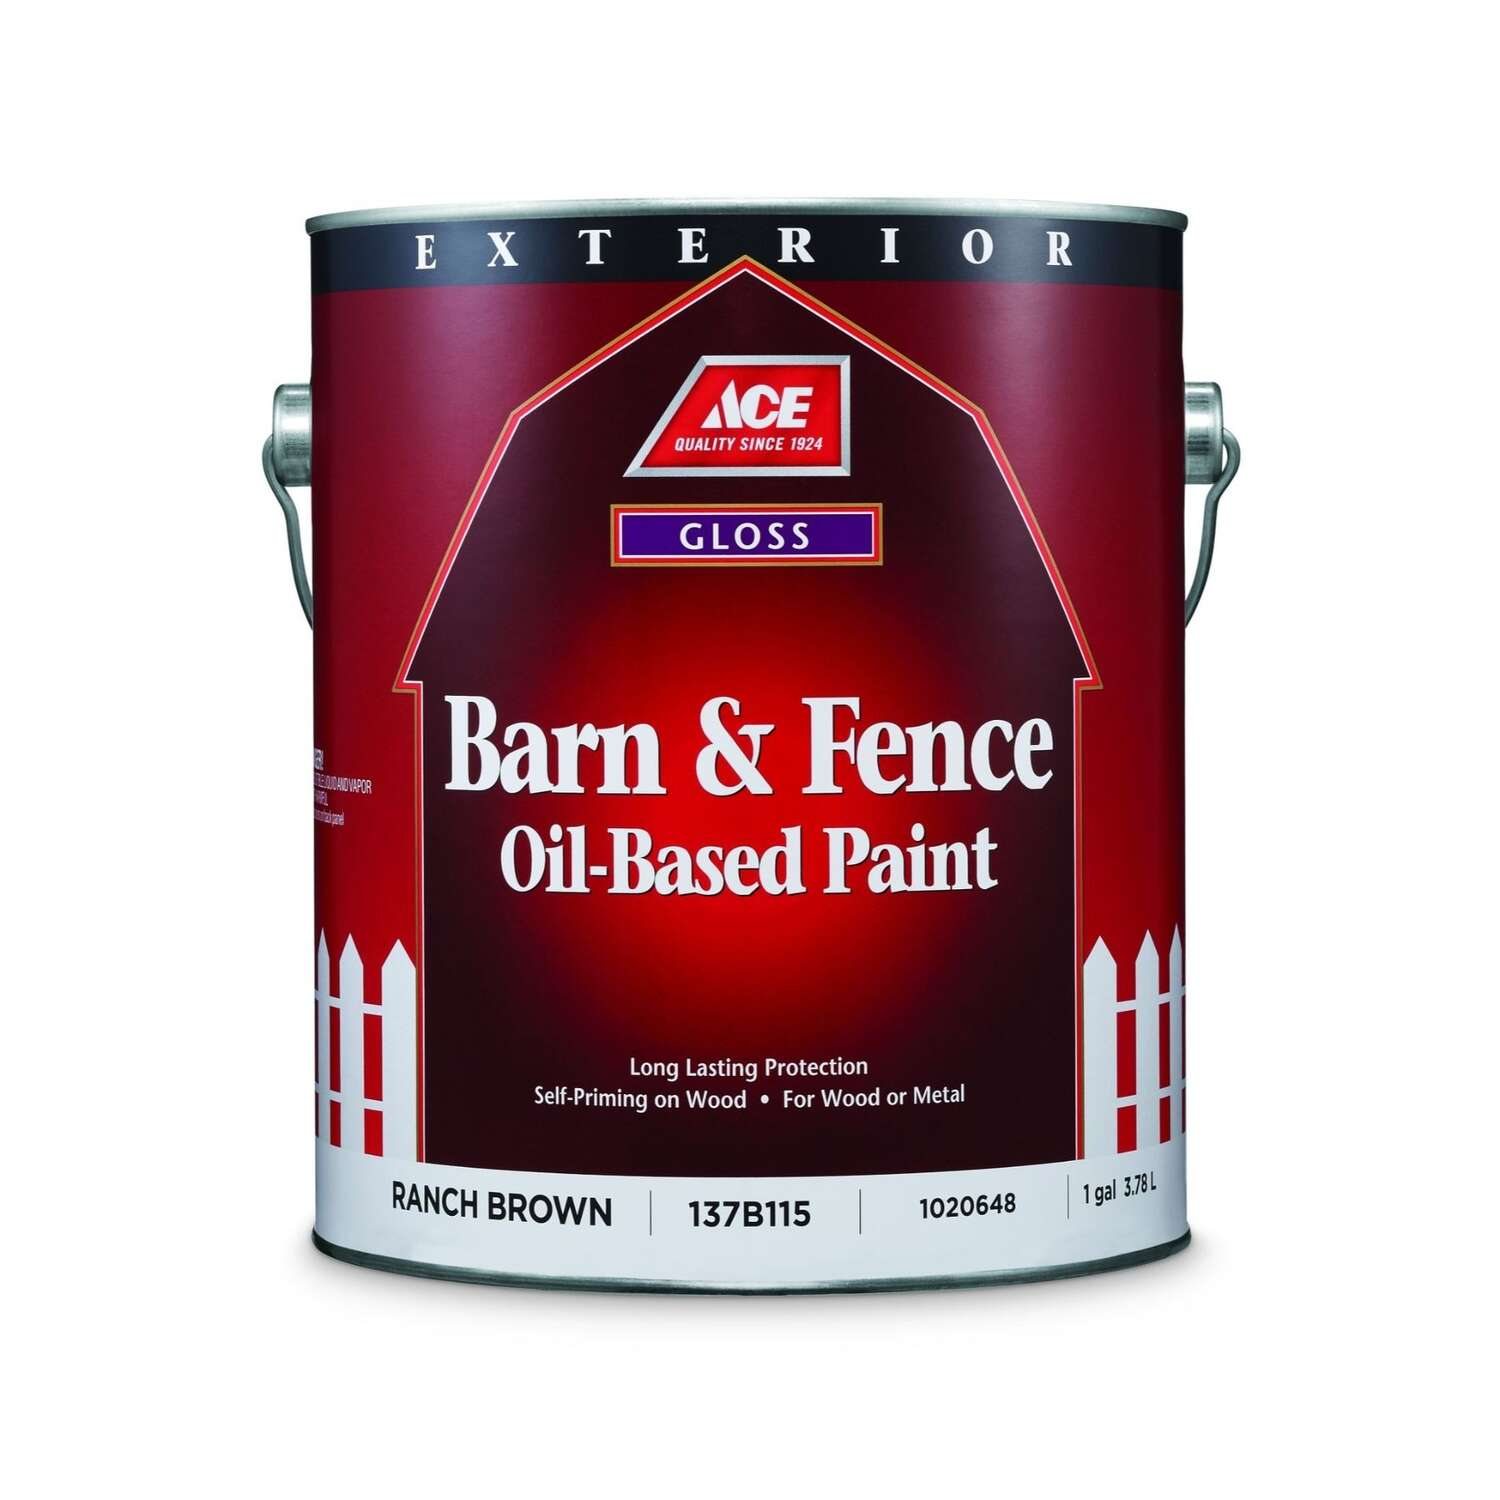 Ace  Gloss  Ranch Brown  Oil-Based  Oil-Based  Barn and Fence Paint  Exterior  1 gal.